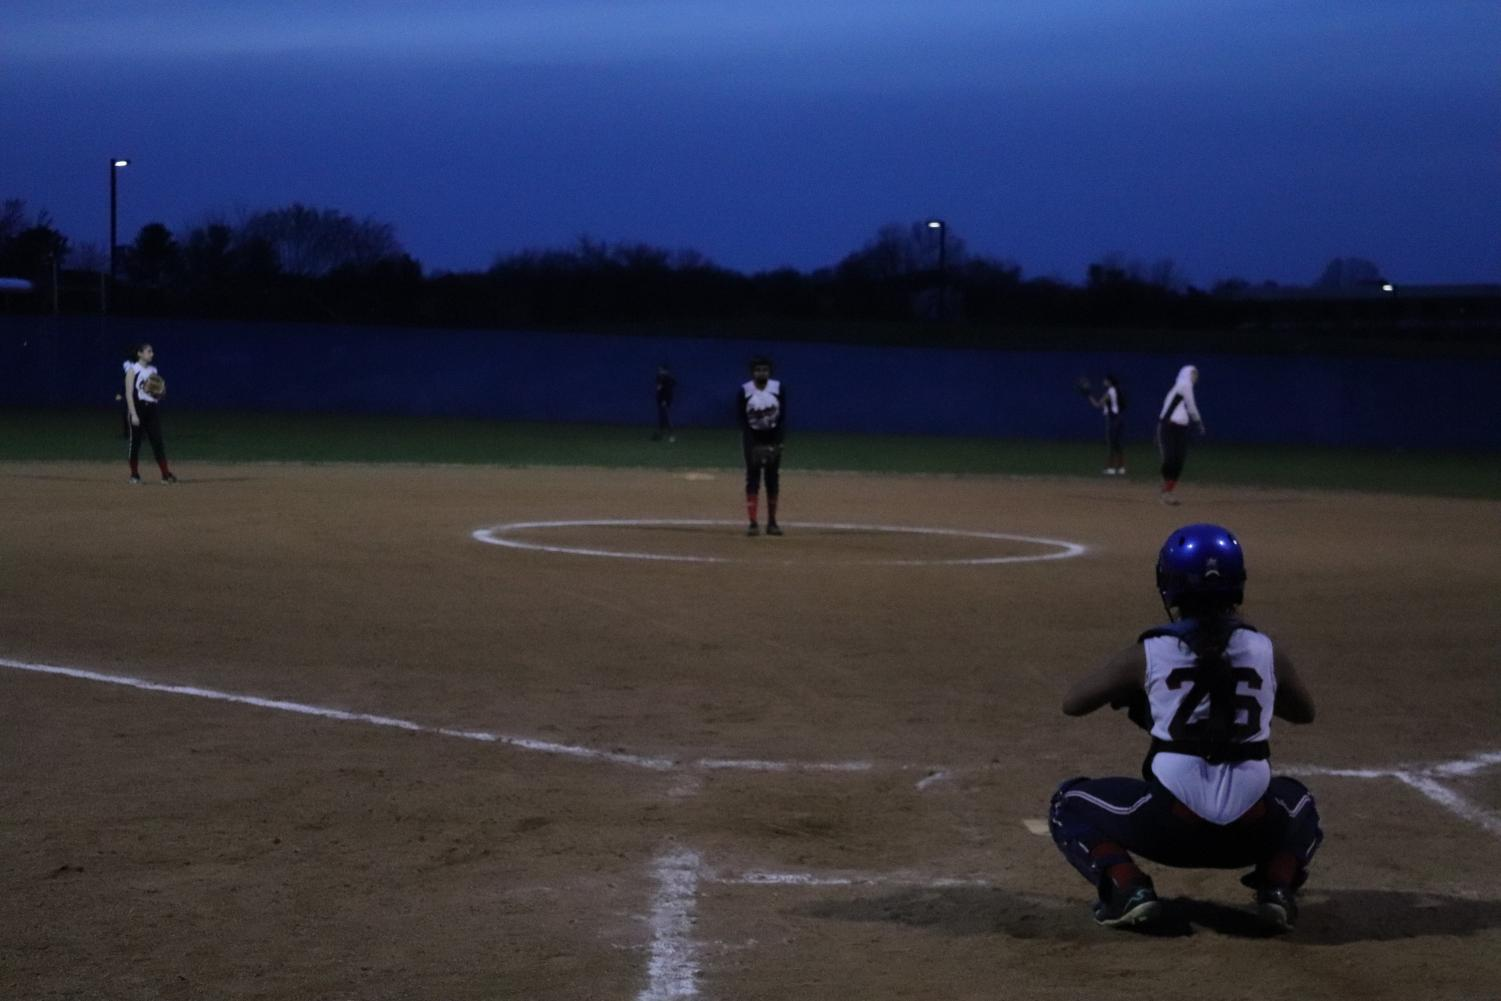 Sophomore+Anika+Kololgi+and+Gudipudi+practiced+pitching+and+catching+the+ball%2C+respectively%2C+before+the+next+inning+began.+Other+Jefferson+players+practice+as+well+with+more+balls.